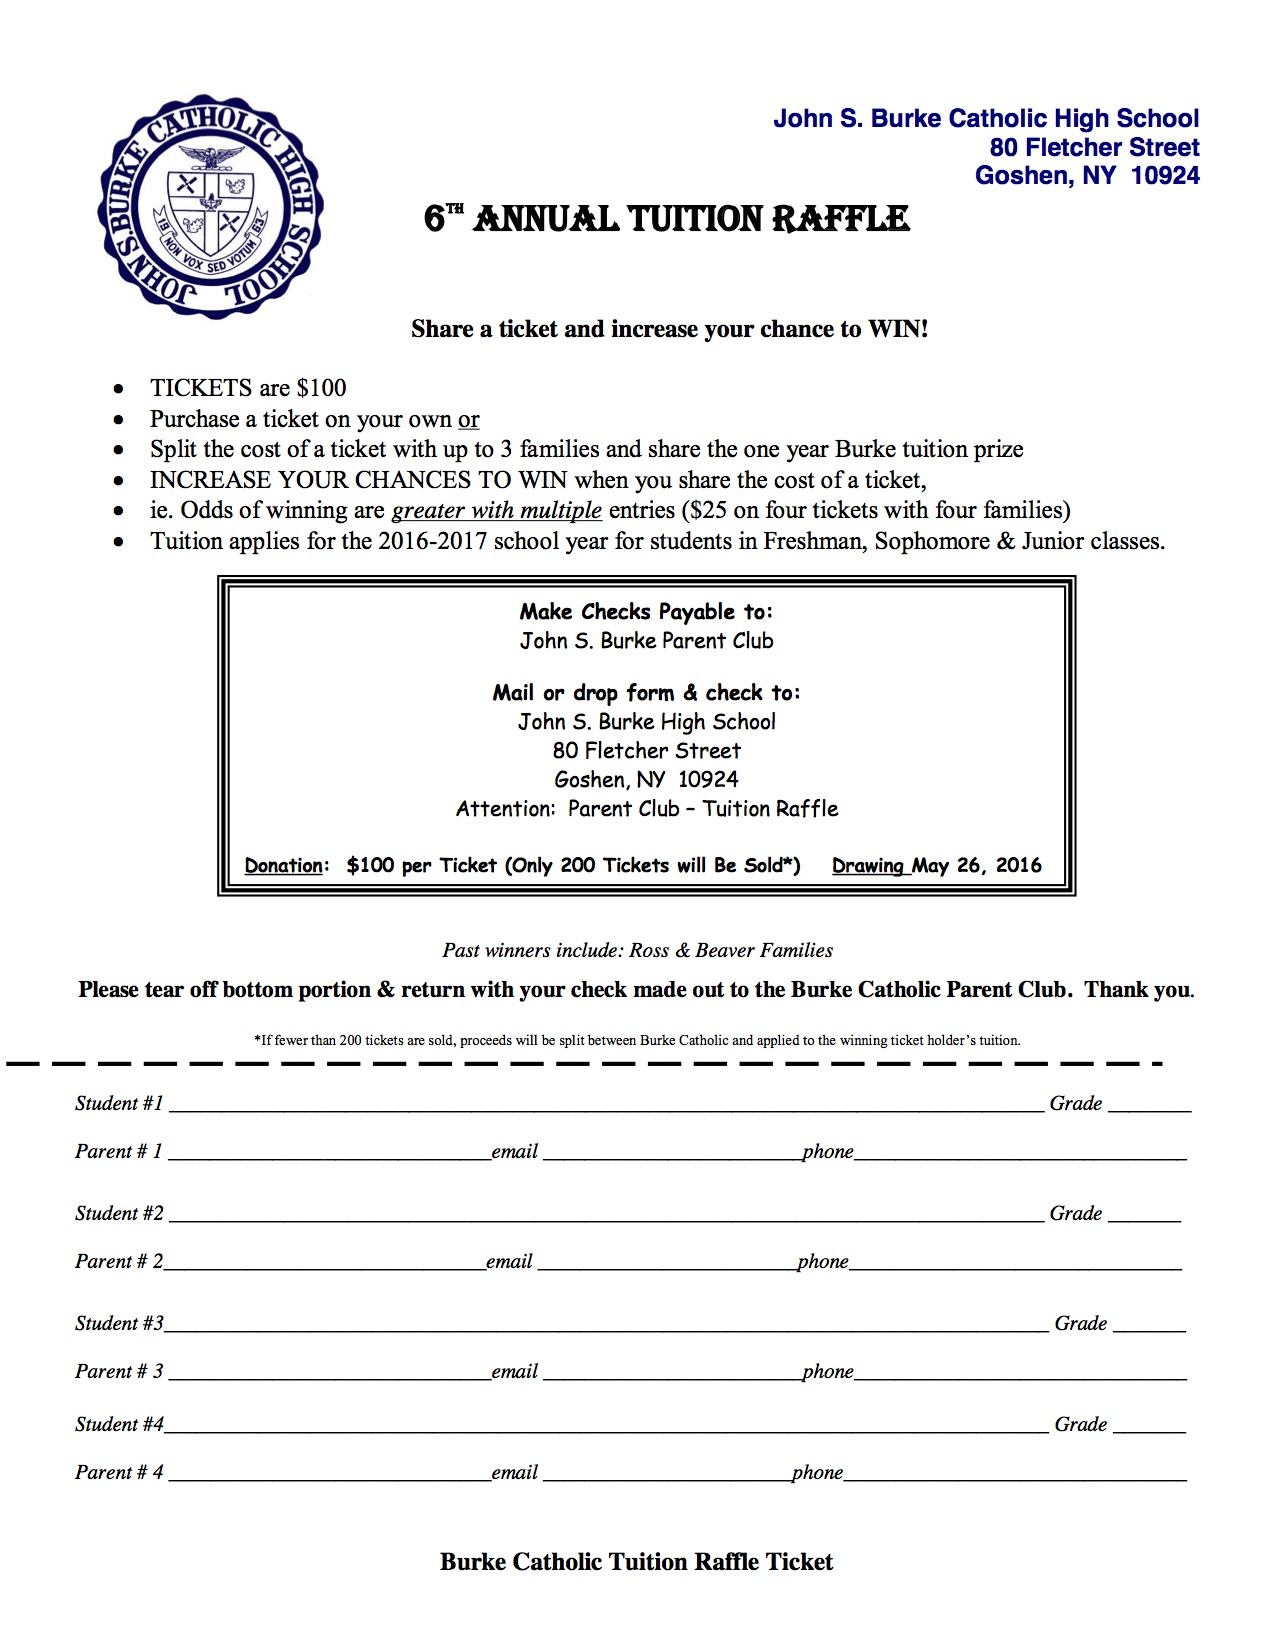 Tuition Raffle - News and Announcements - John S  Burke